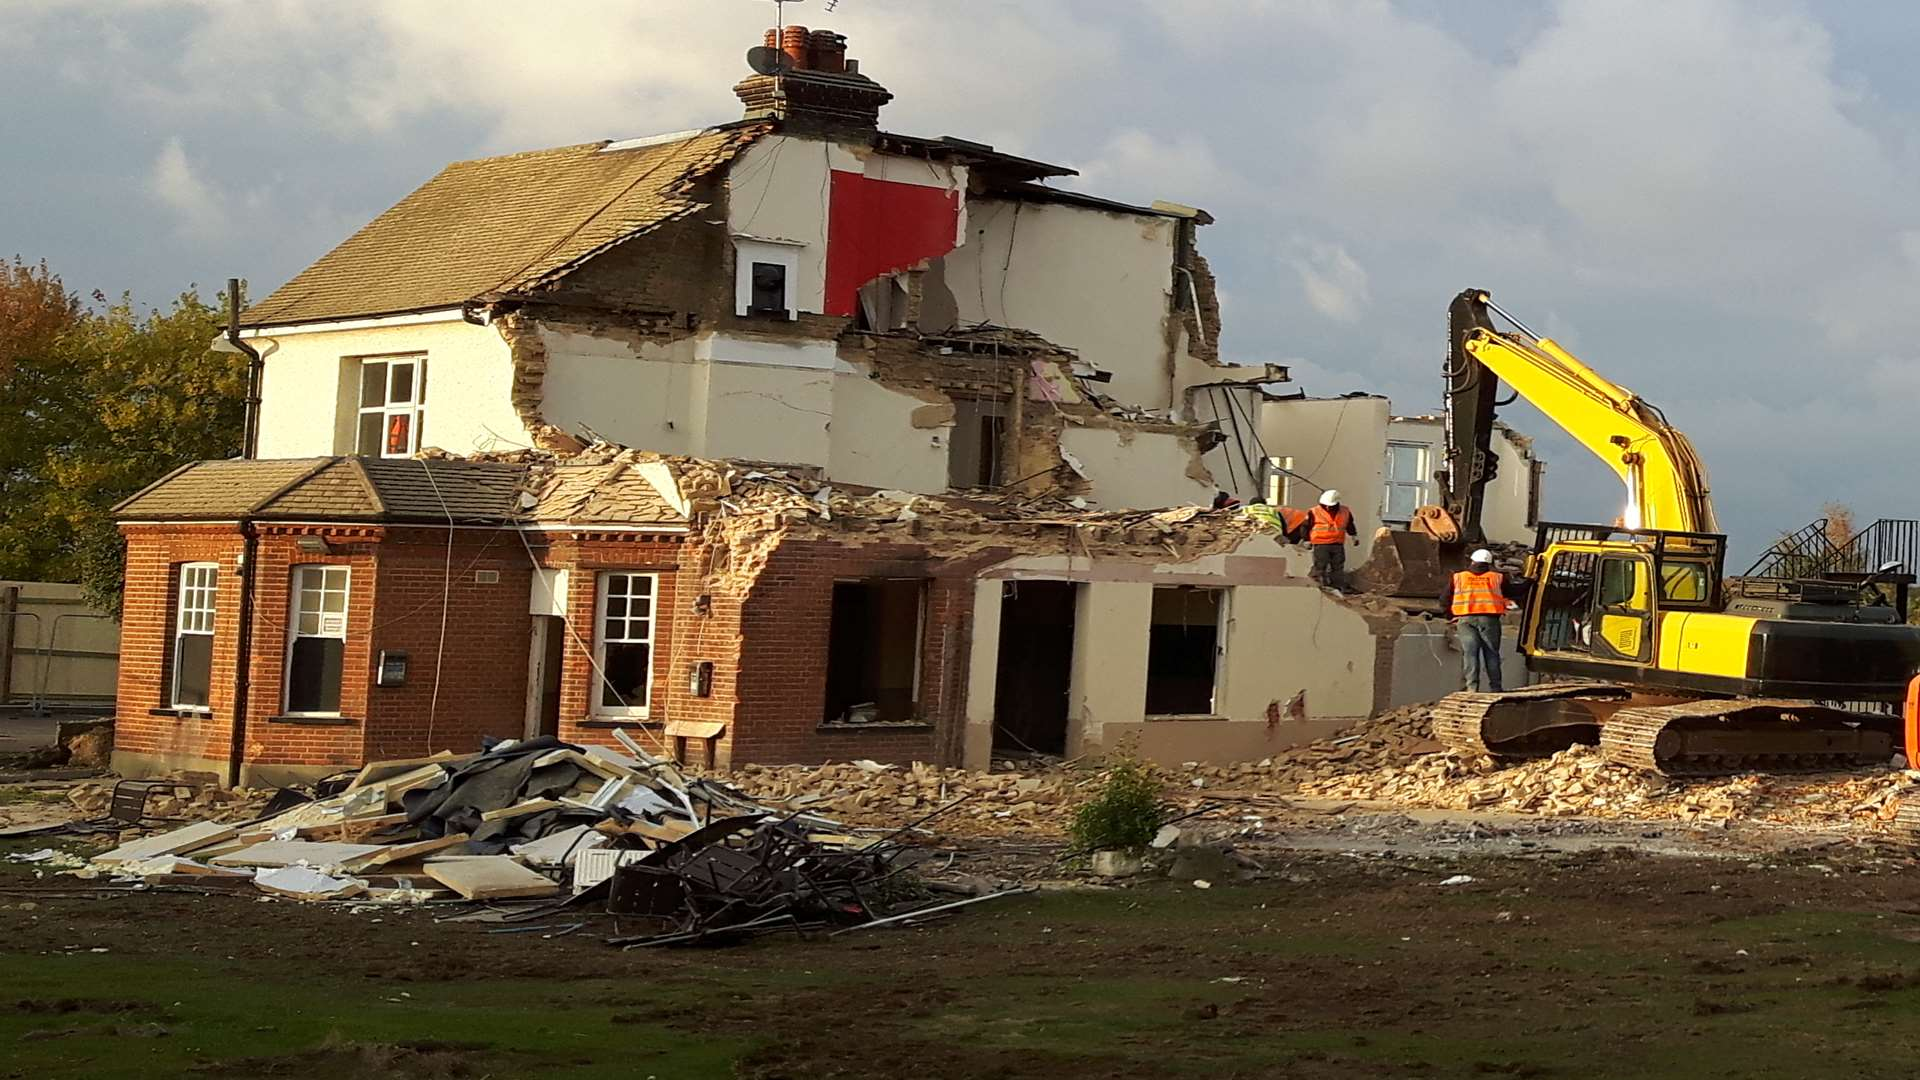 The unauthorised demolition at the pub